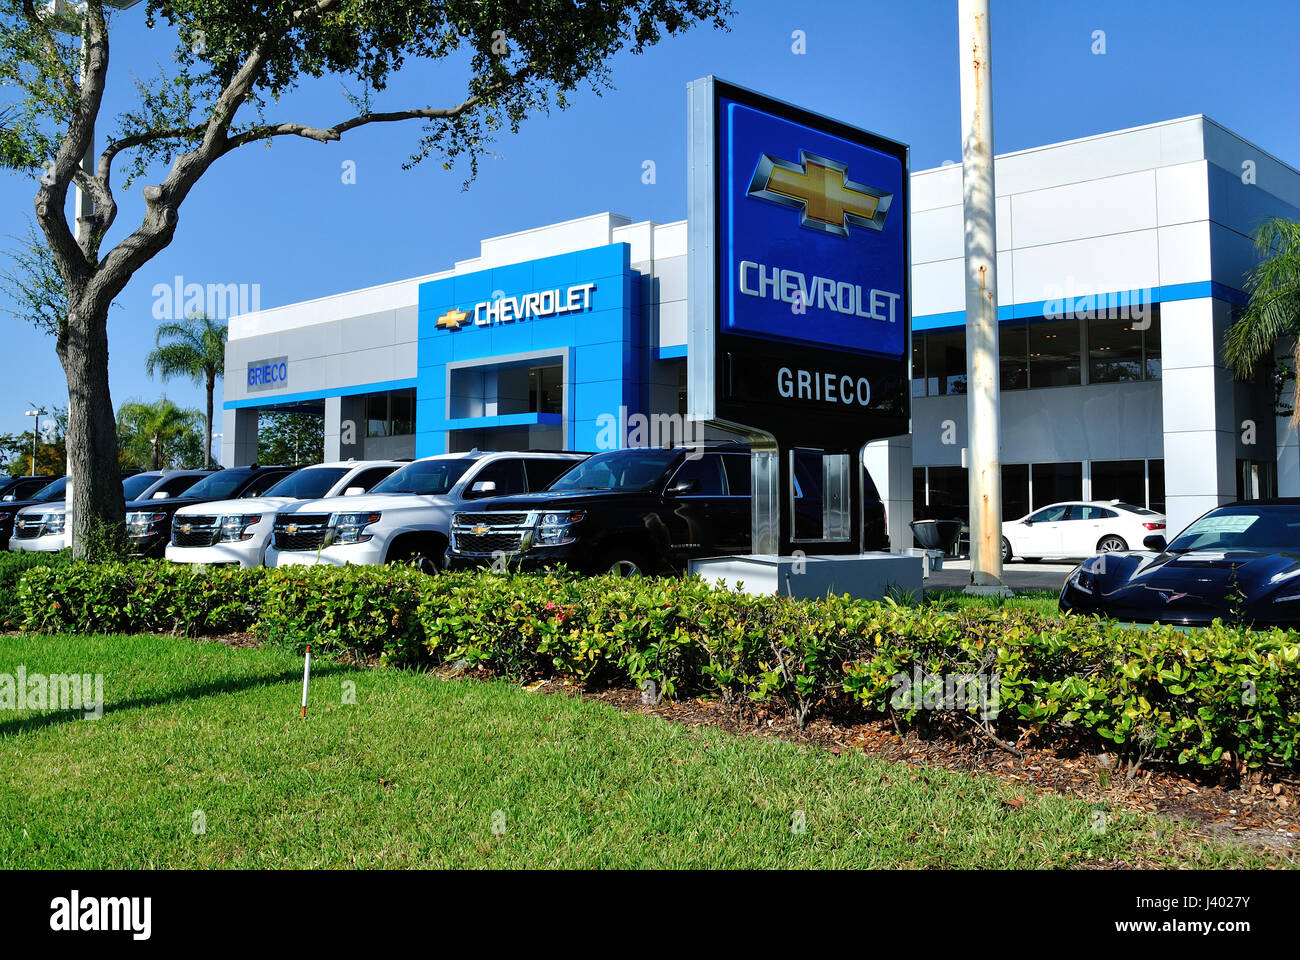 Greico Chevrolet Fort Lauderdale Florida May 2017.  Chevrolet is a division of General Motors - Stock Image